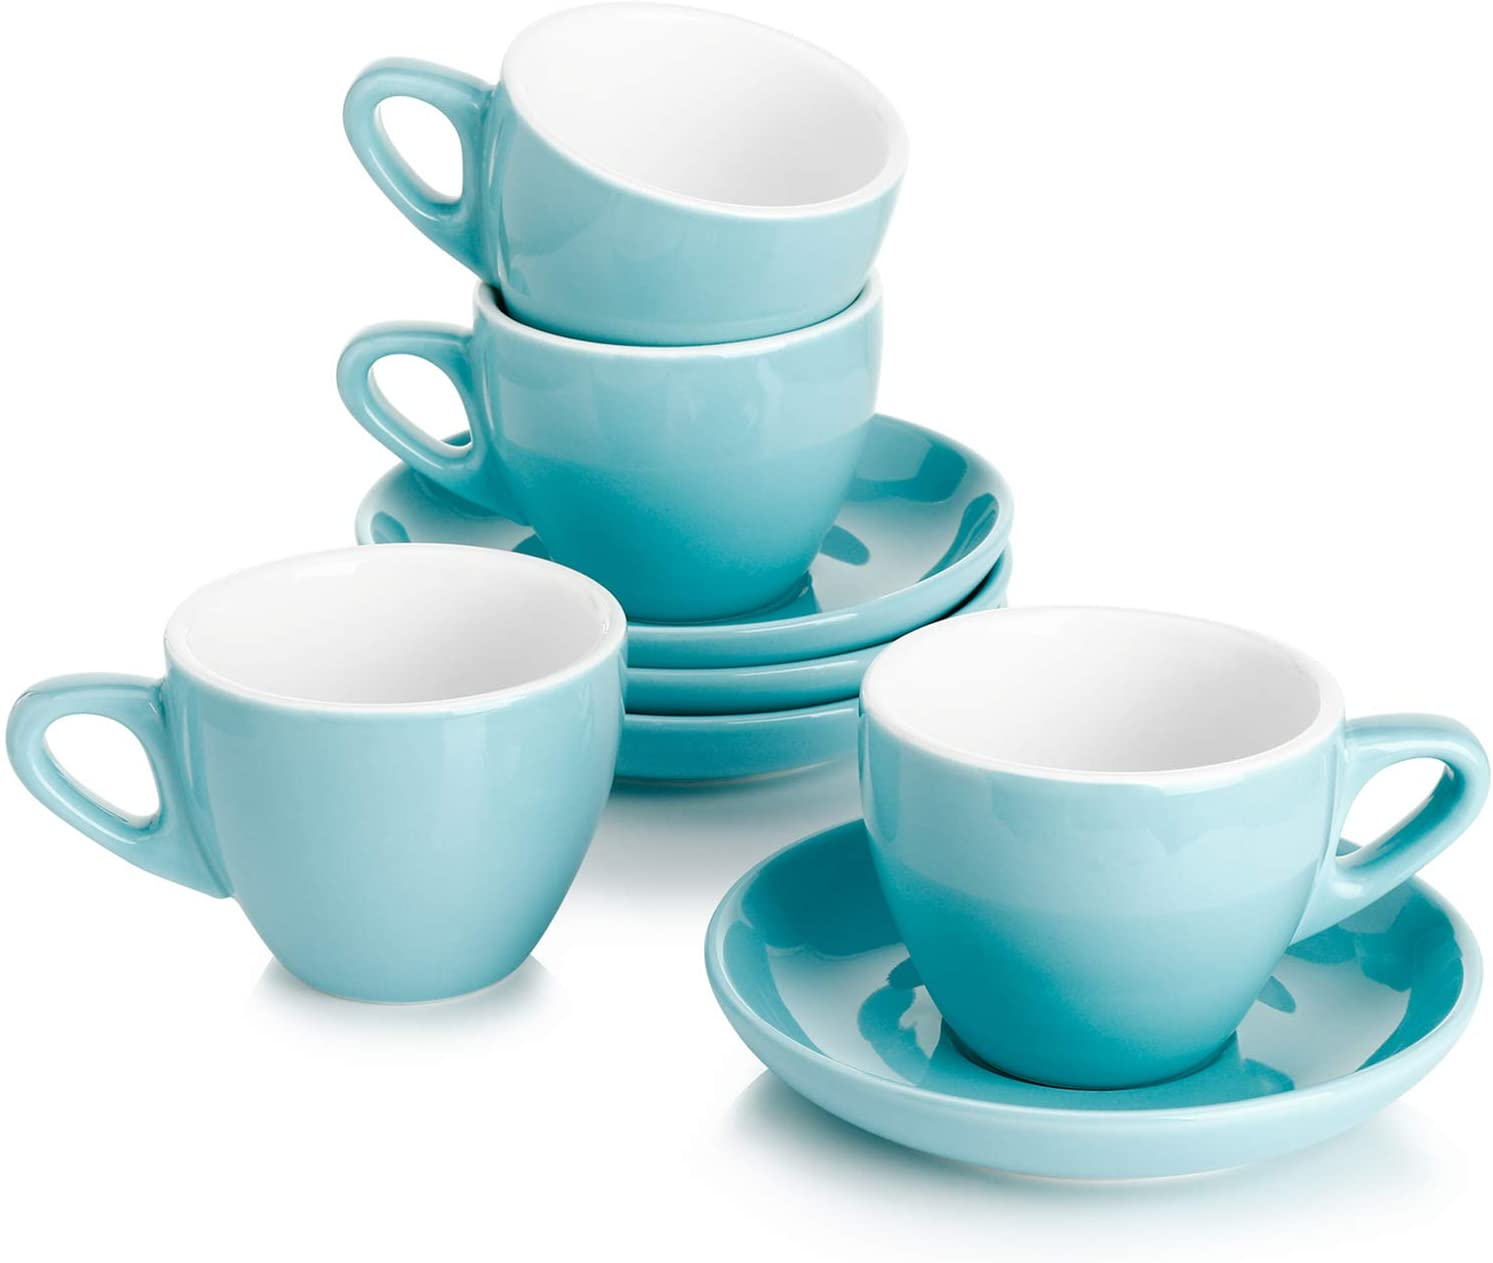 Sweese 401.402 Porcelain Espresso Cups with Saucers - 2 Ounce - Set of 4, Turquoise